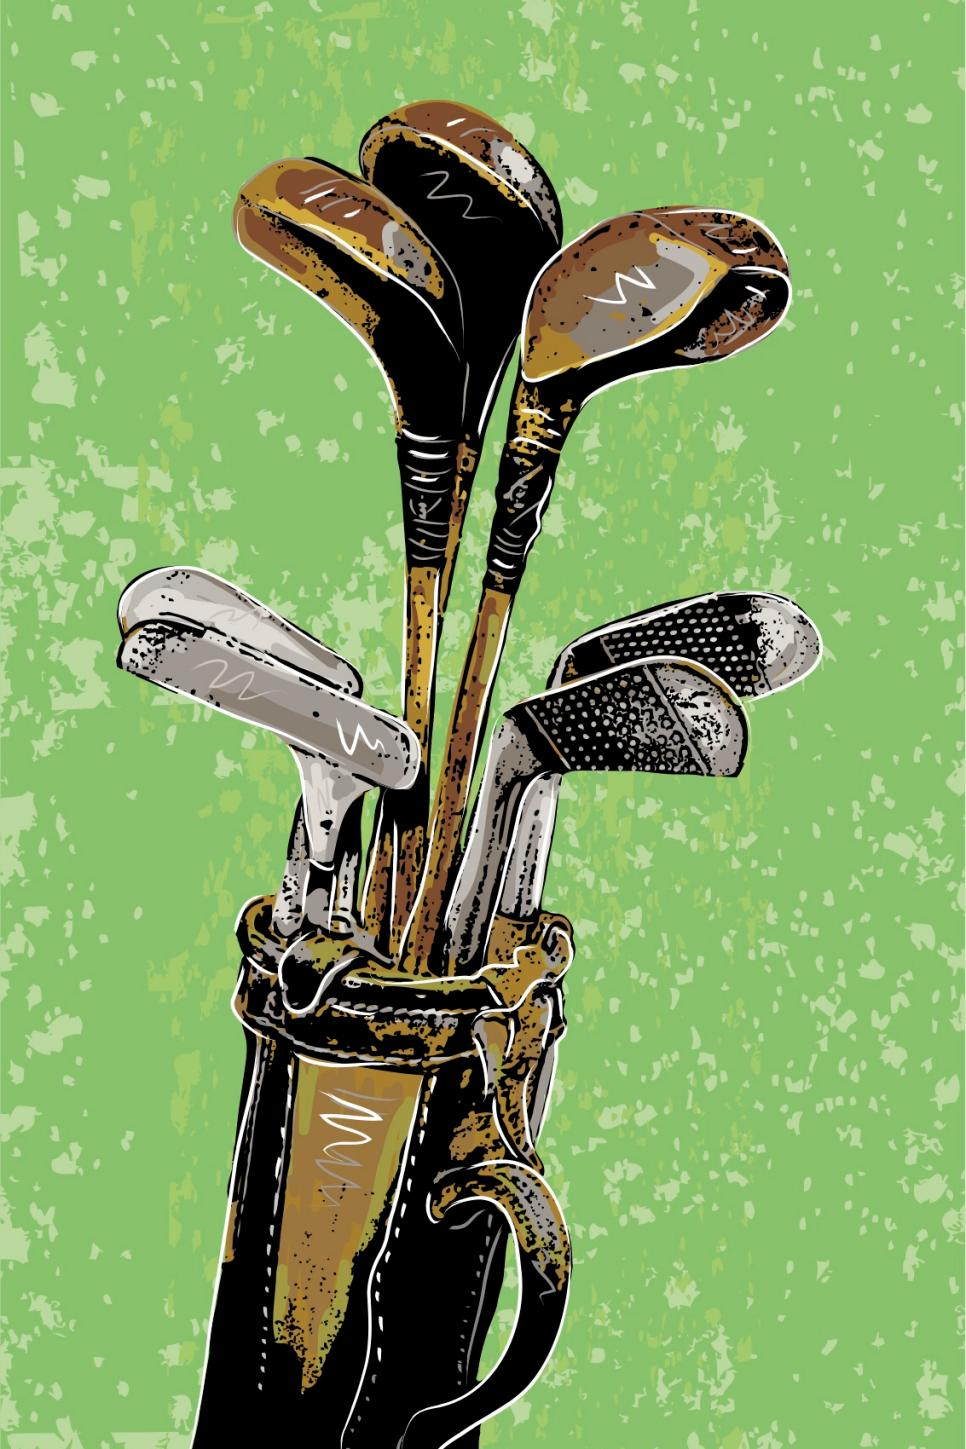 Old golf bag.jpg